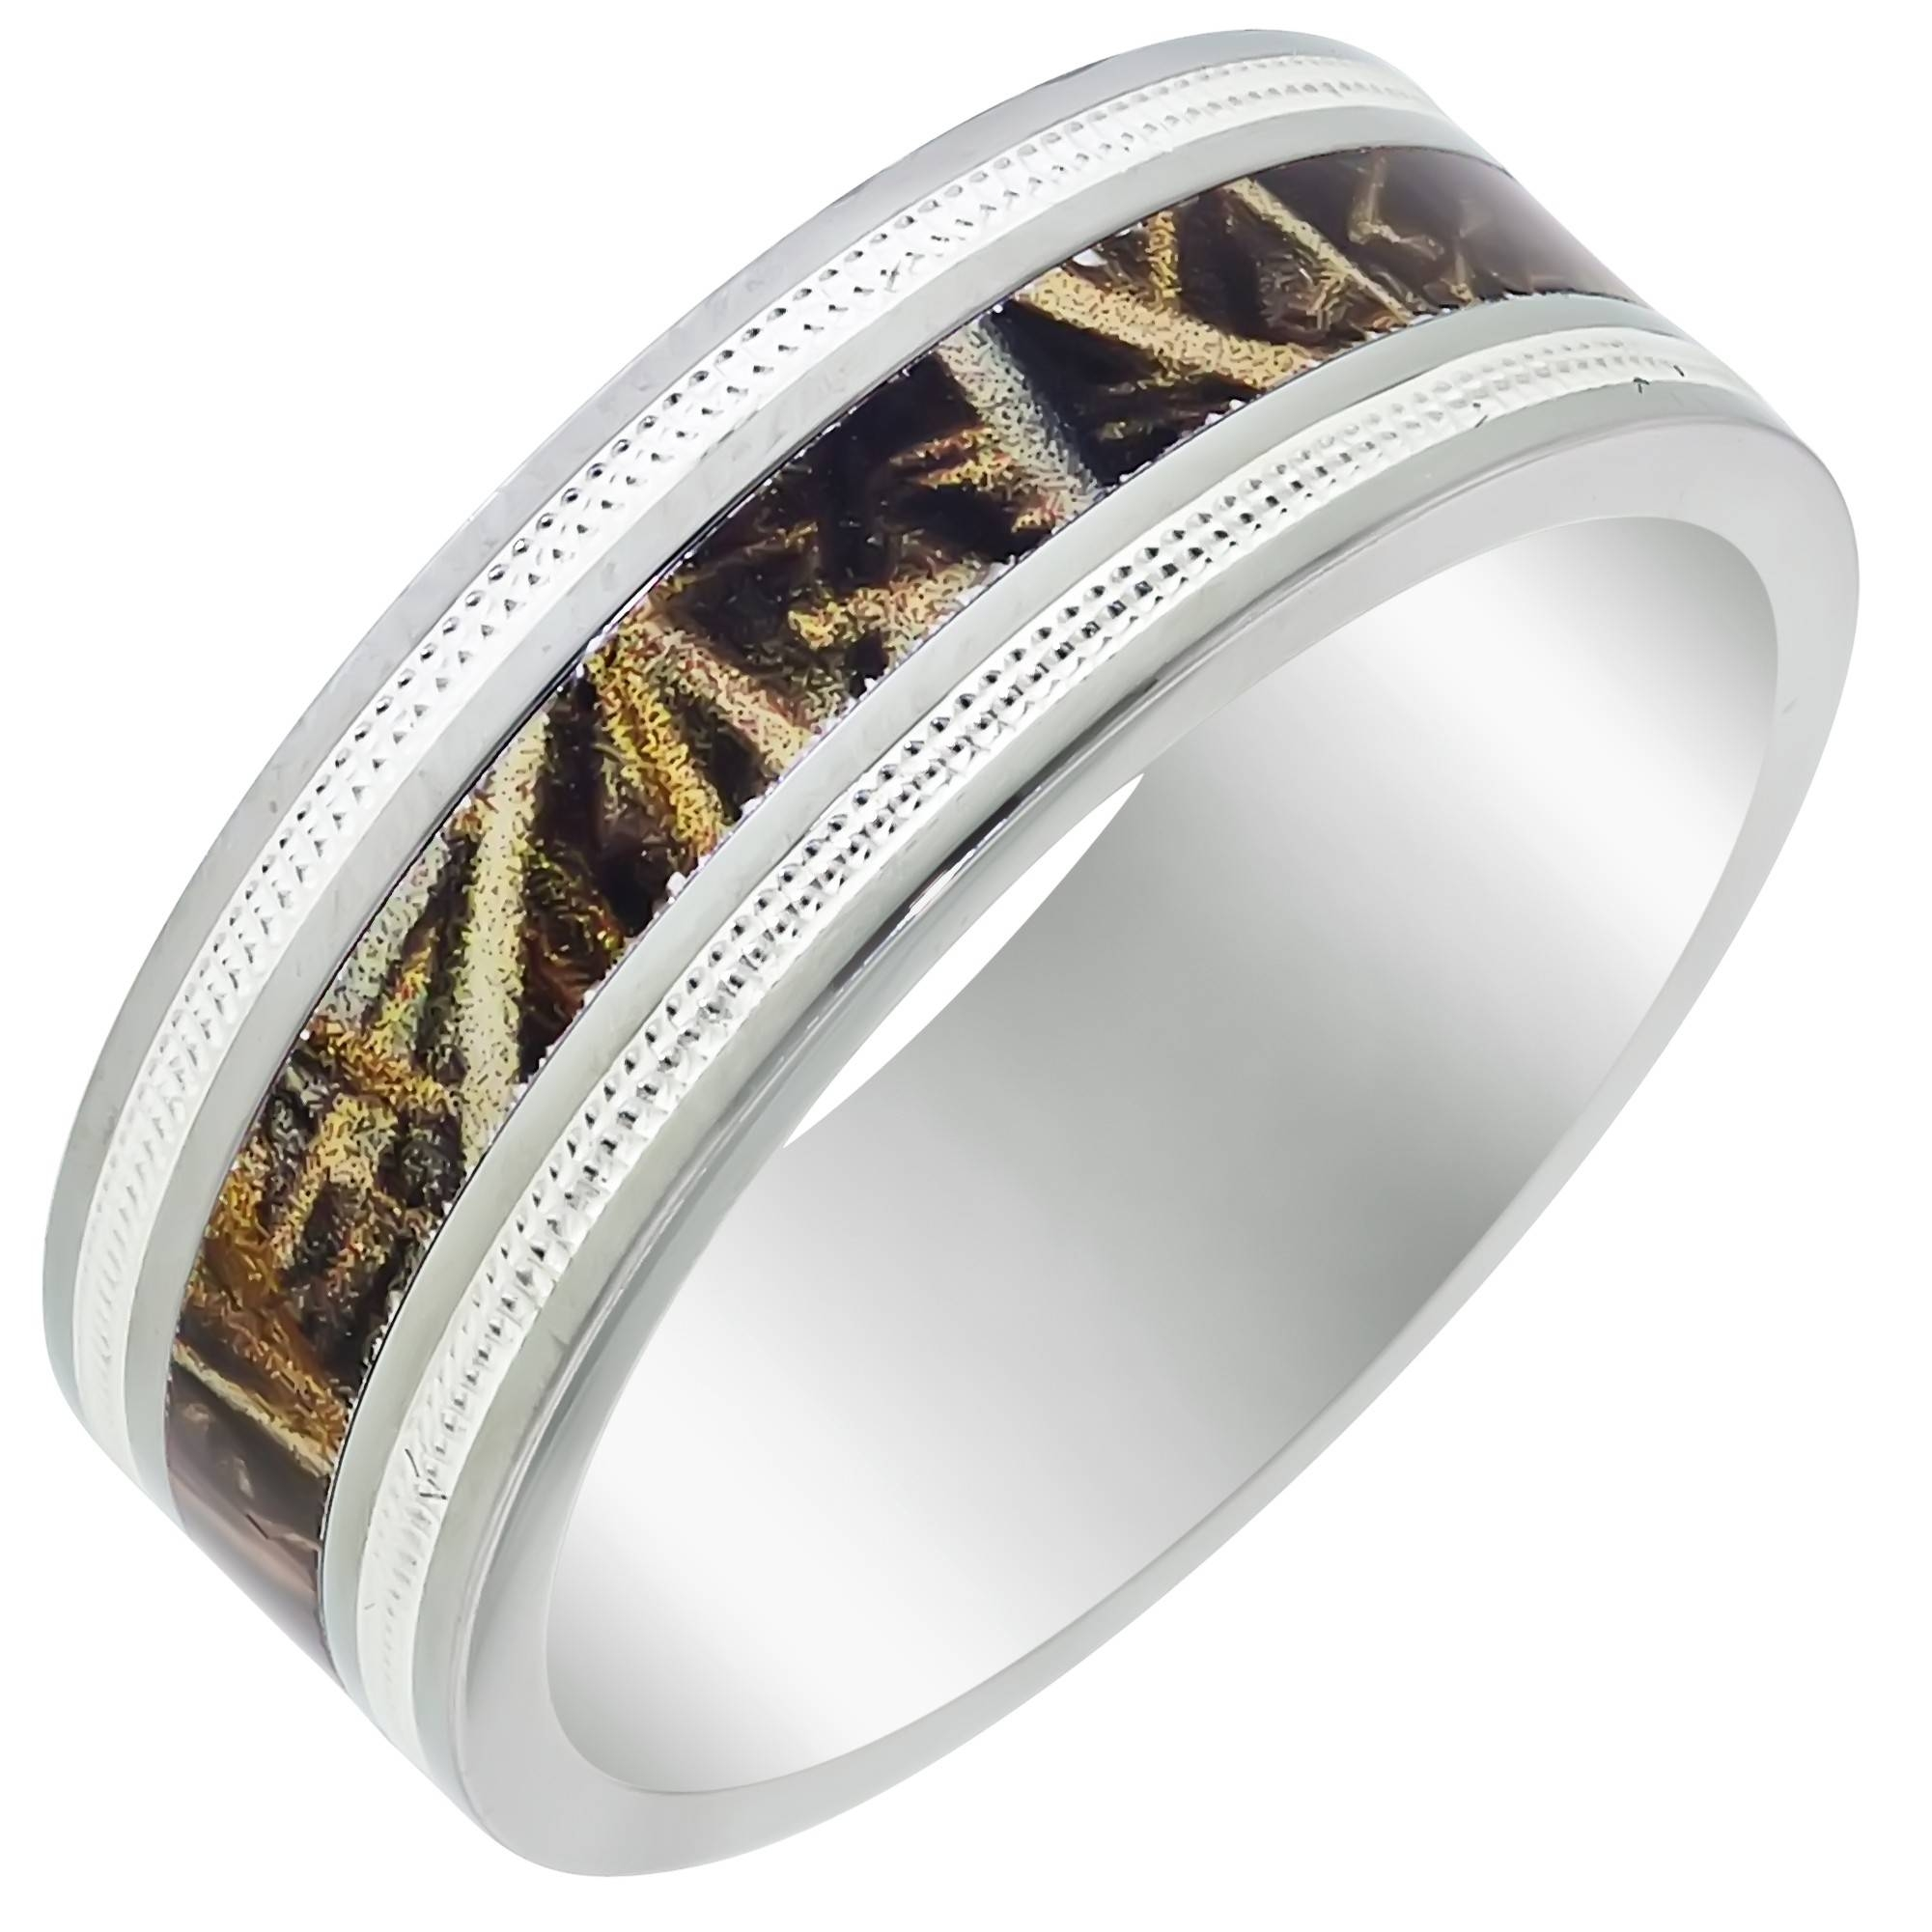 Mens Titanium Camo Wedding Band With Beaded Edge (8mm) Regarding Mens Camouflage Wedding Bands (View 5 of 15)